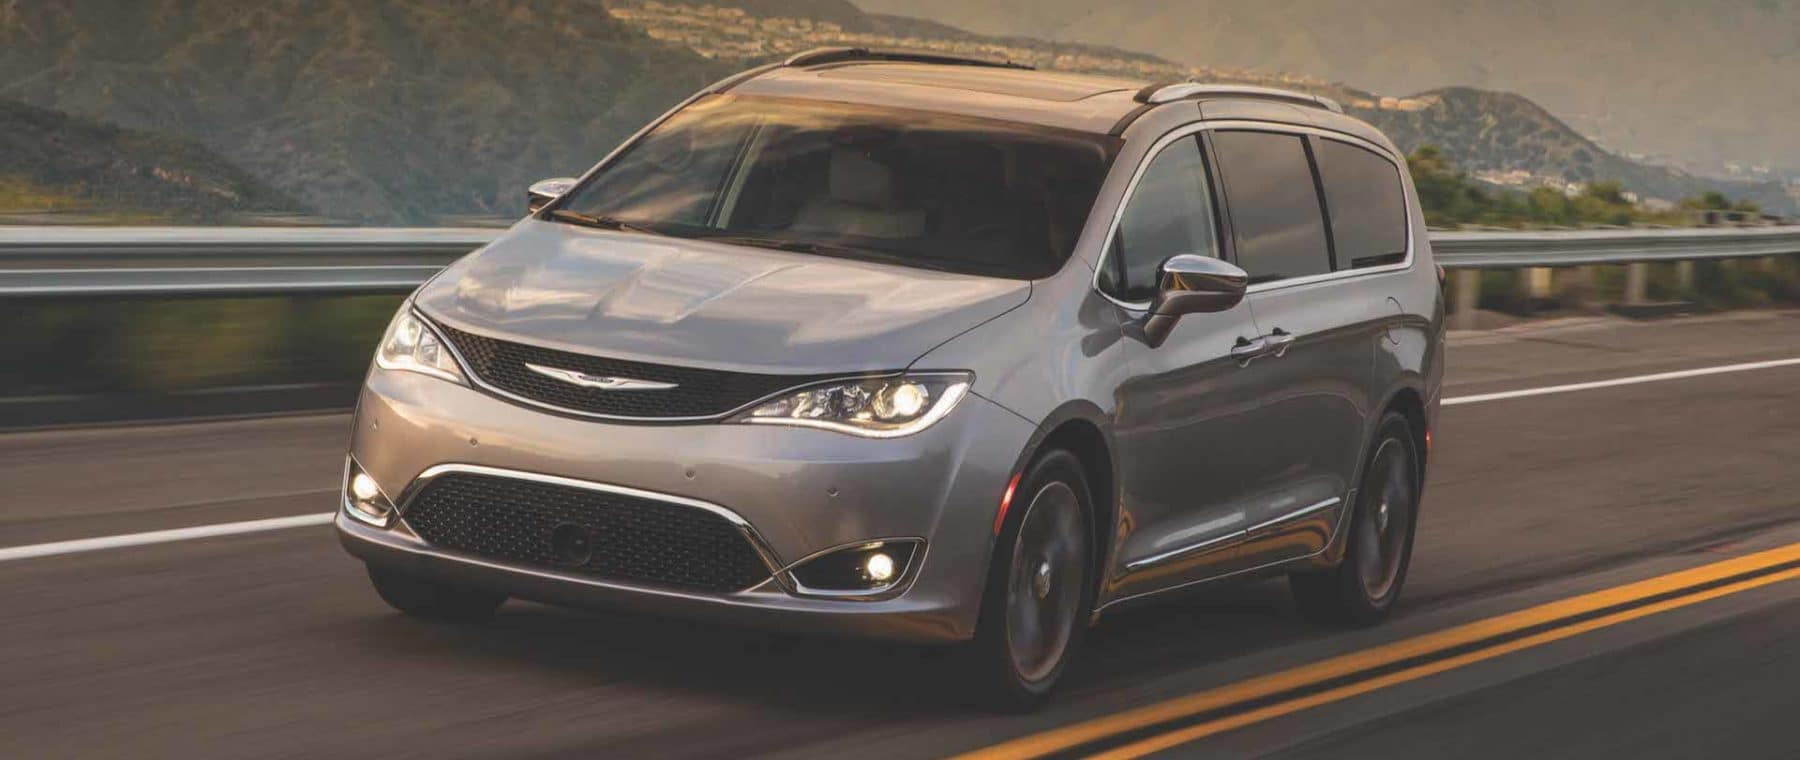 chrysler-pacifica-on-highway